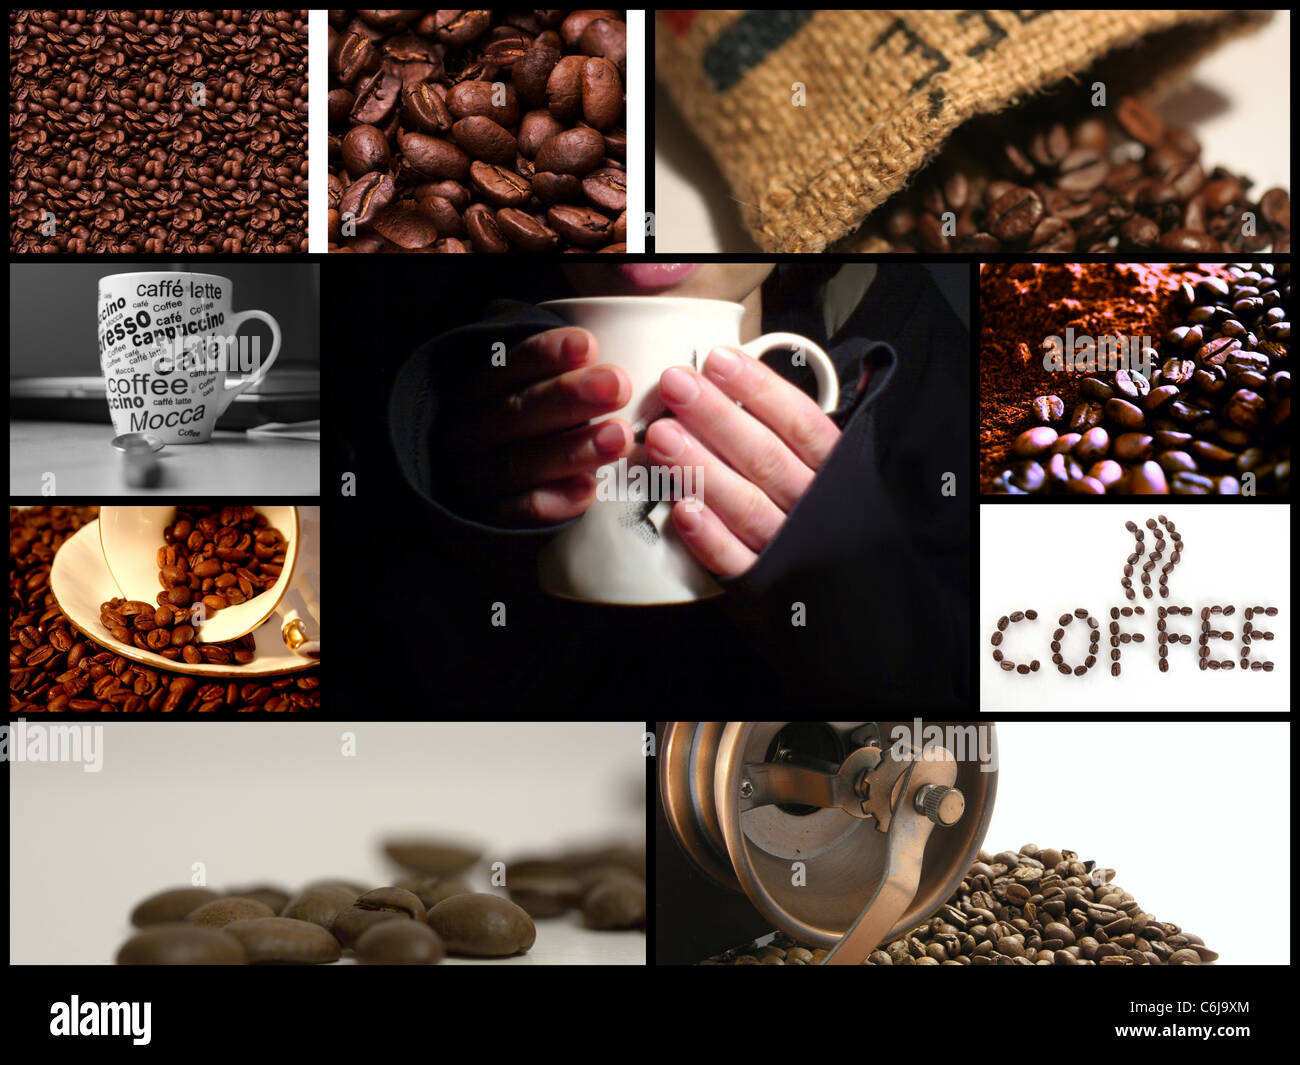 Coffee themed collage made from four images - Stock Image